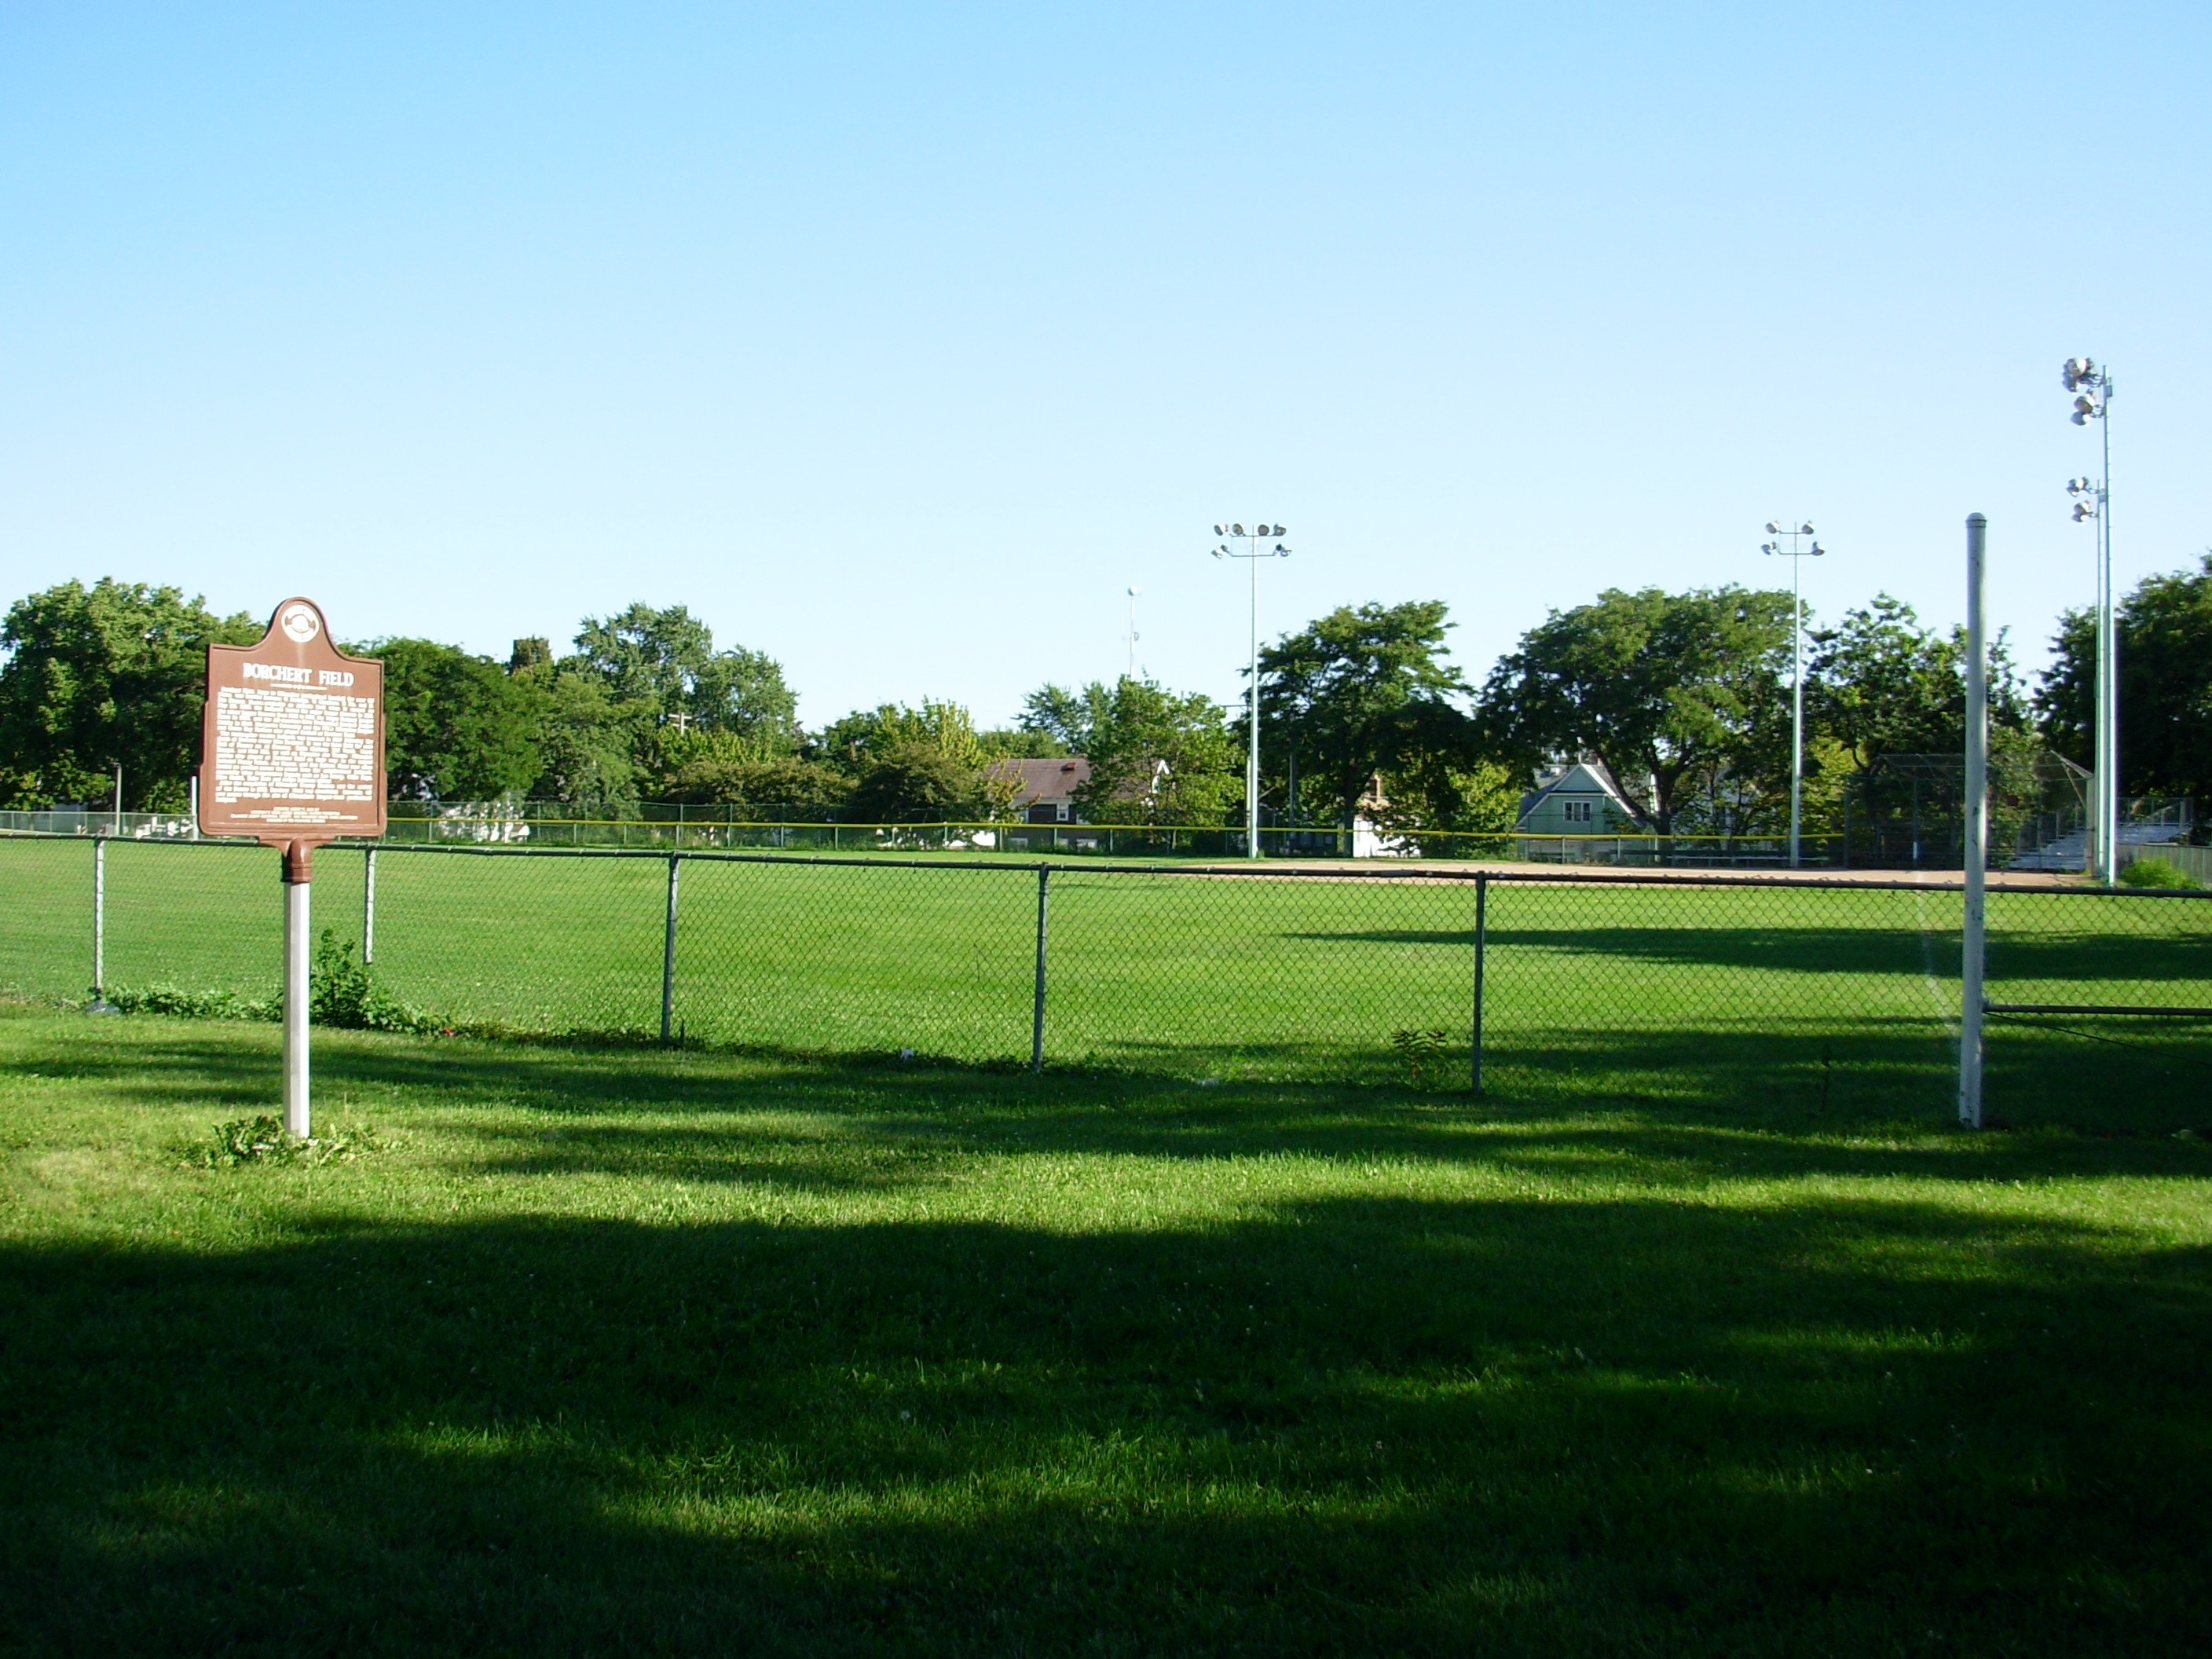 Borchert Field/The Milwaukee Bears Negro National League 1923 (Two sided marker) Marker